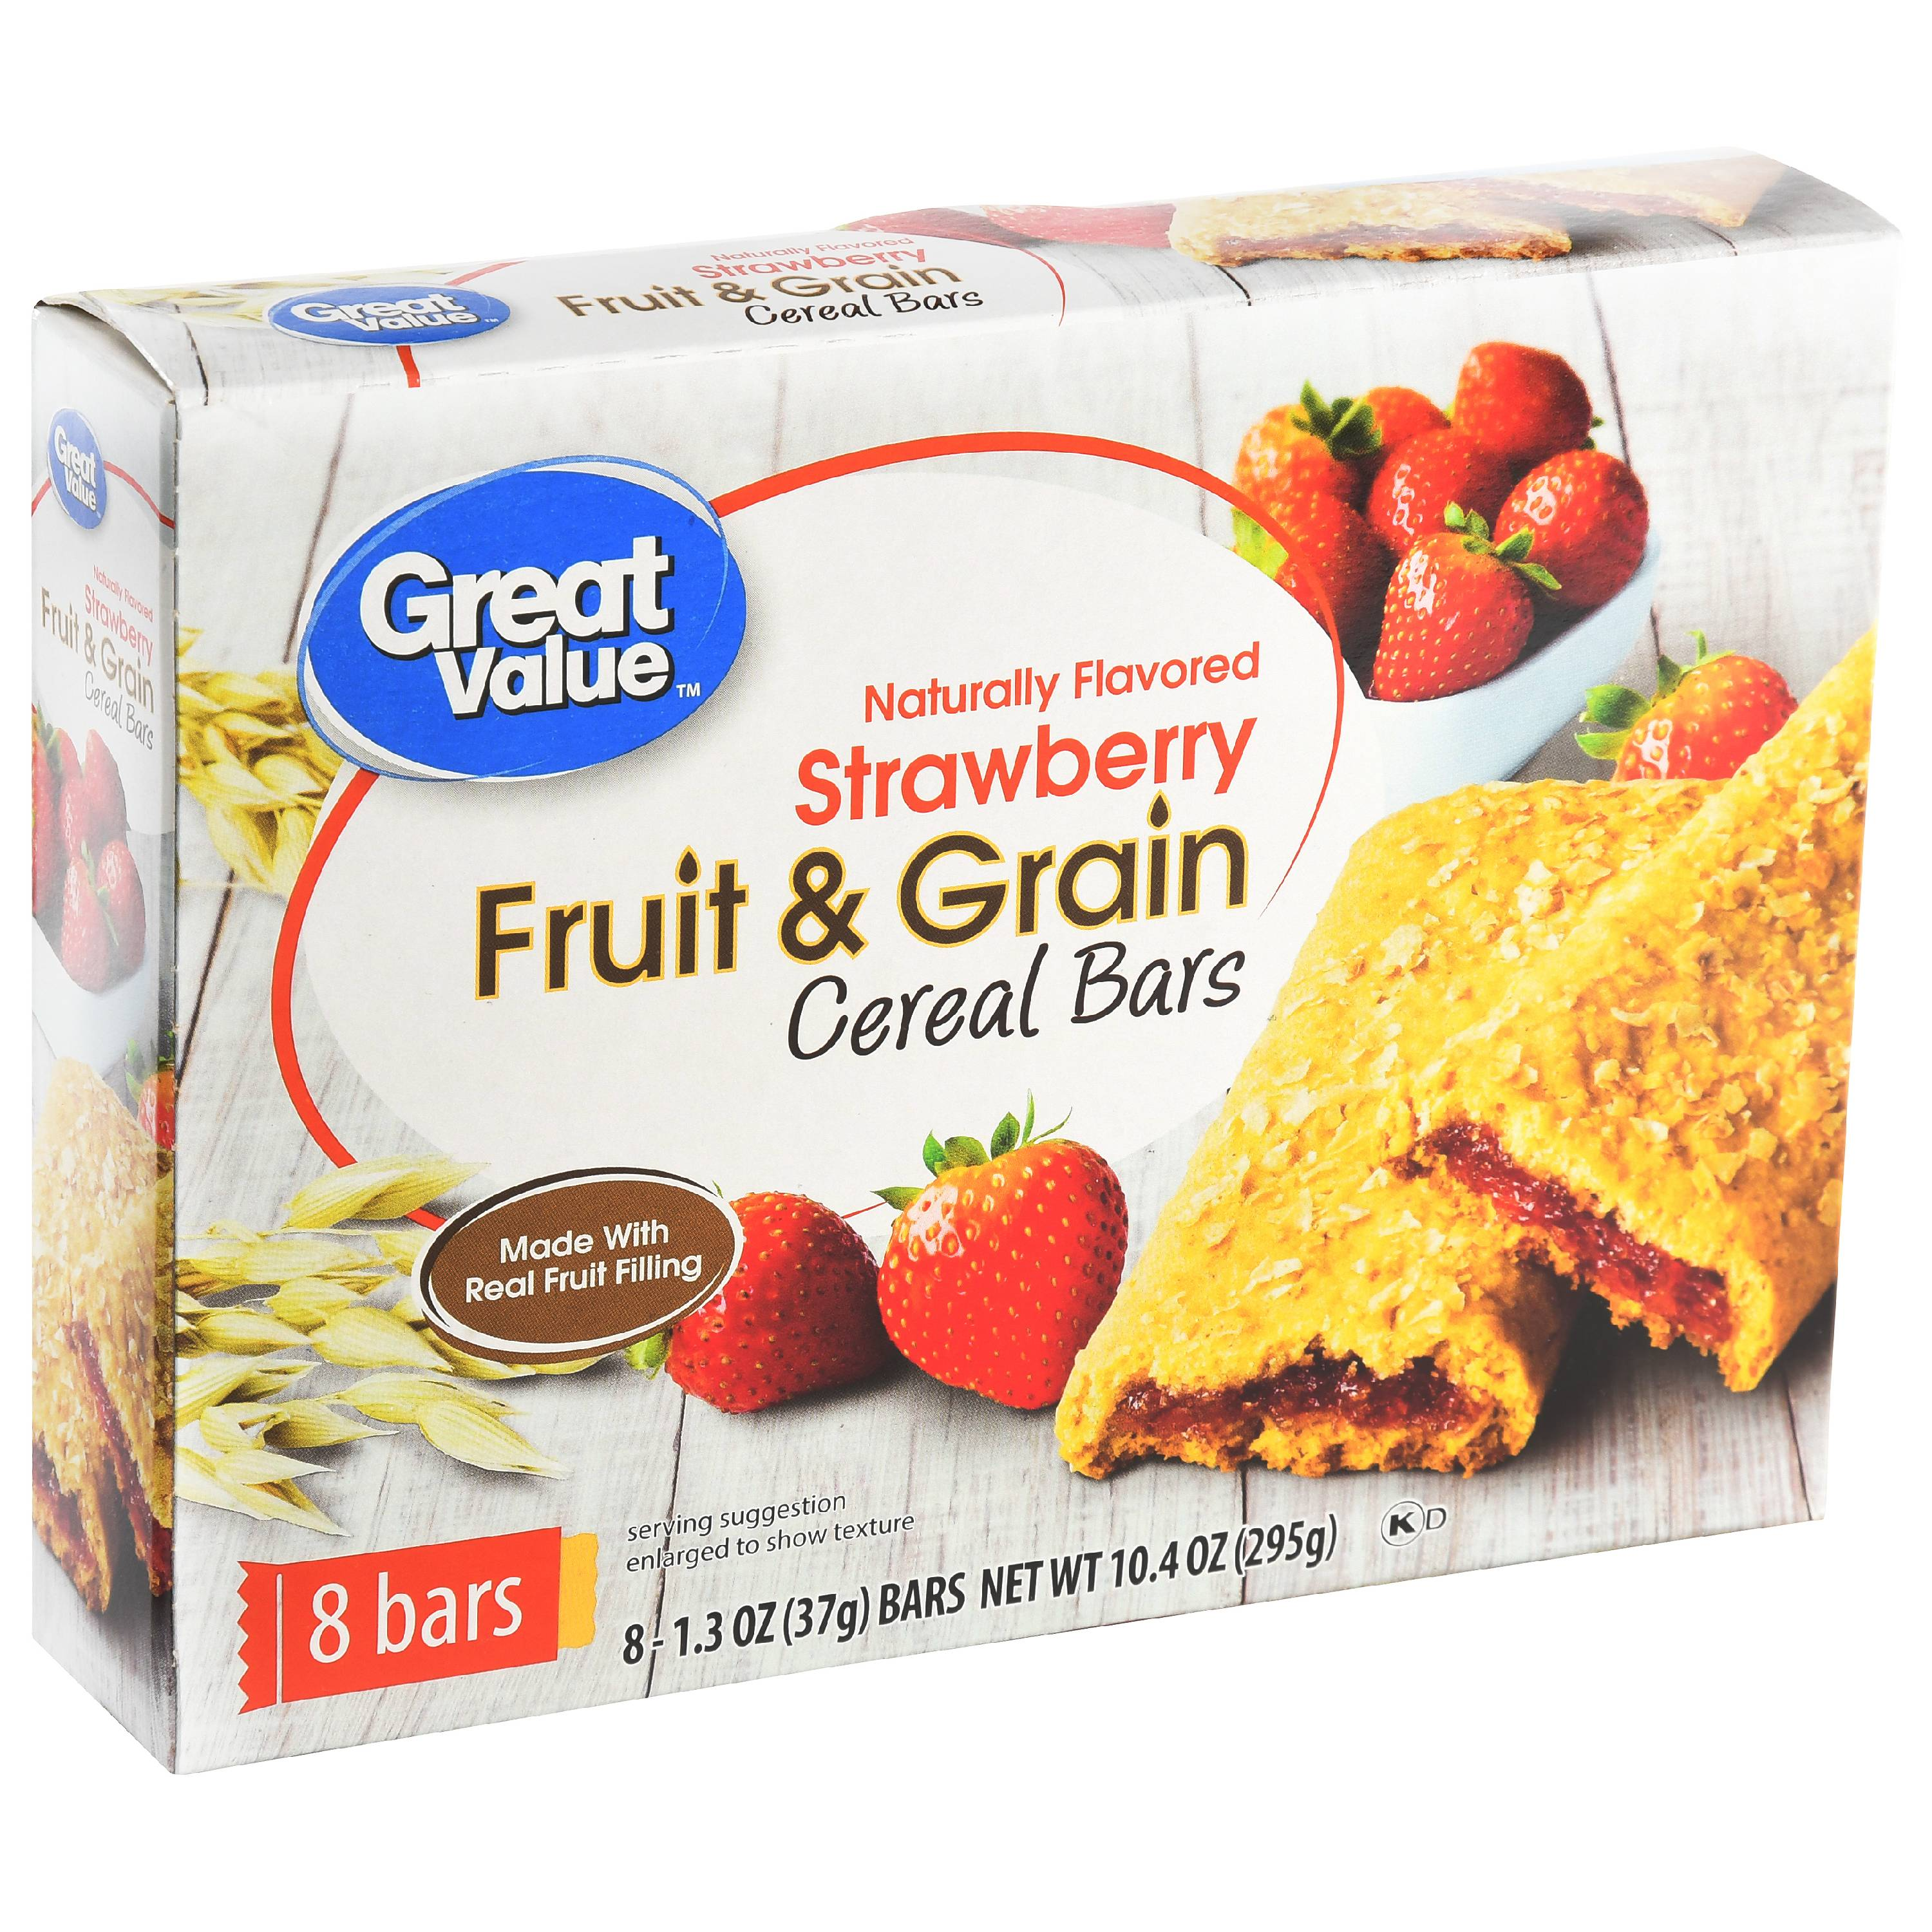 (6 Pack) Great Value Fruit & Grain Cereal Bars, Strawberry, 10.4 oz, 8 Count